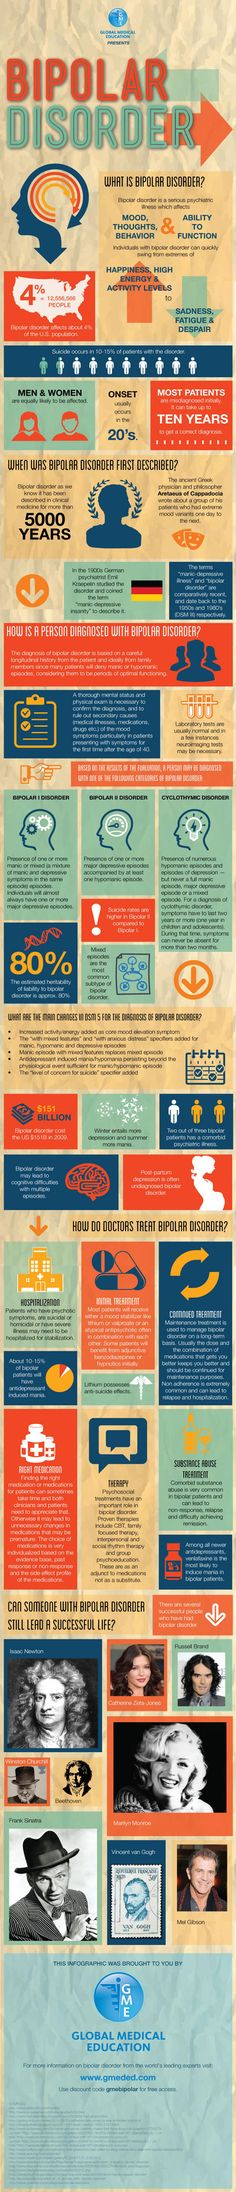 What is Bipolar Disorder Infographic